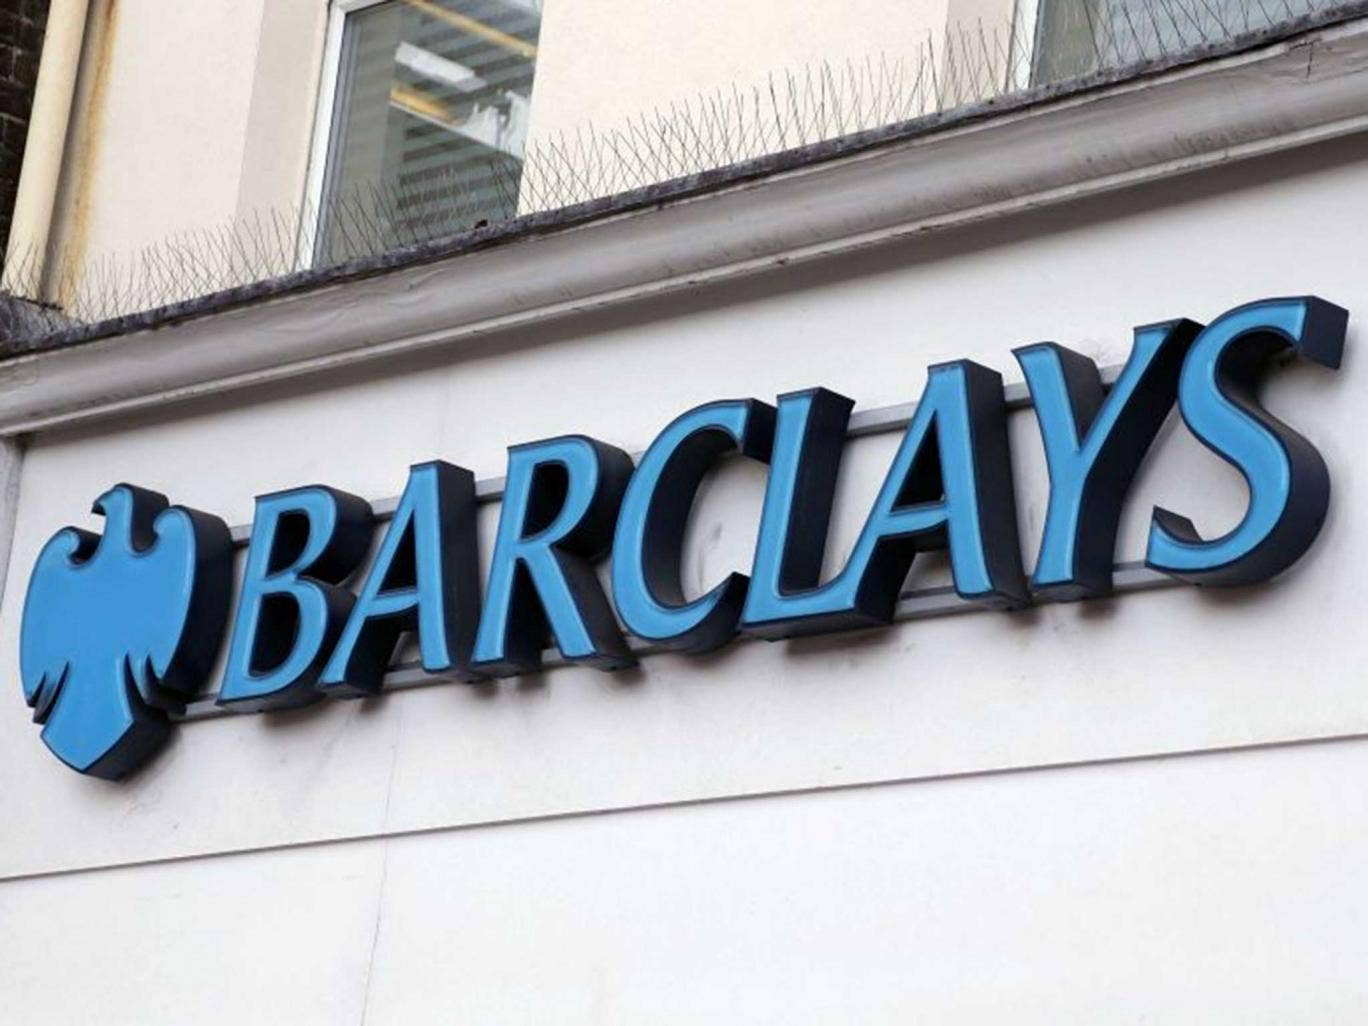 Barclays are reducing the number of staff in their branches - and giving those remain ipads